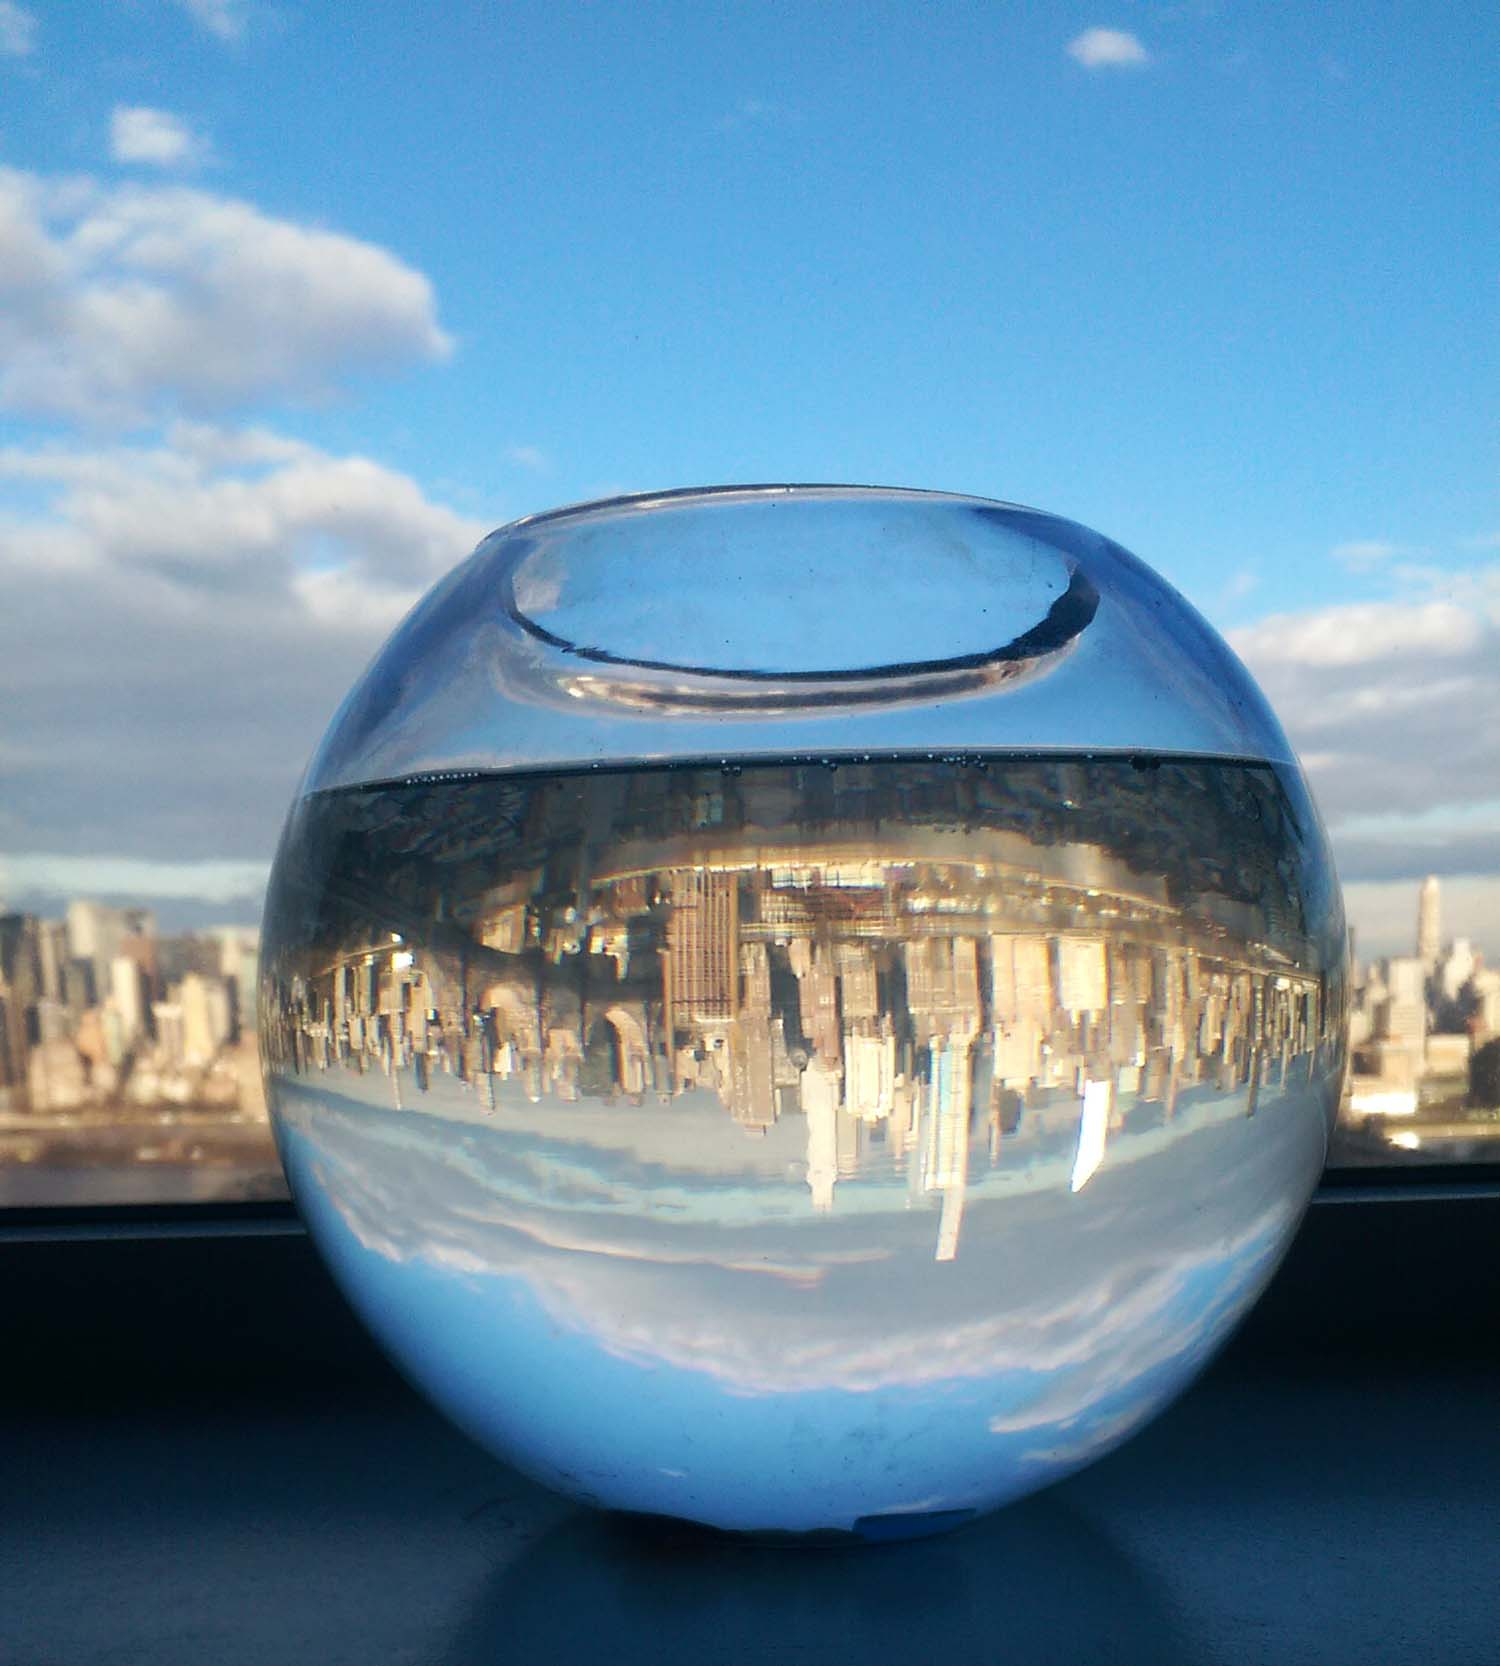 New York City/Manhattan Skyline in a fish bowl